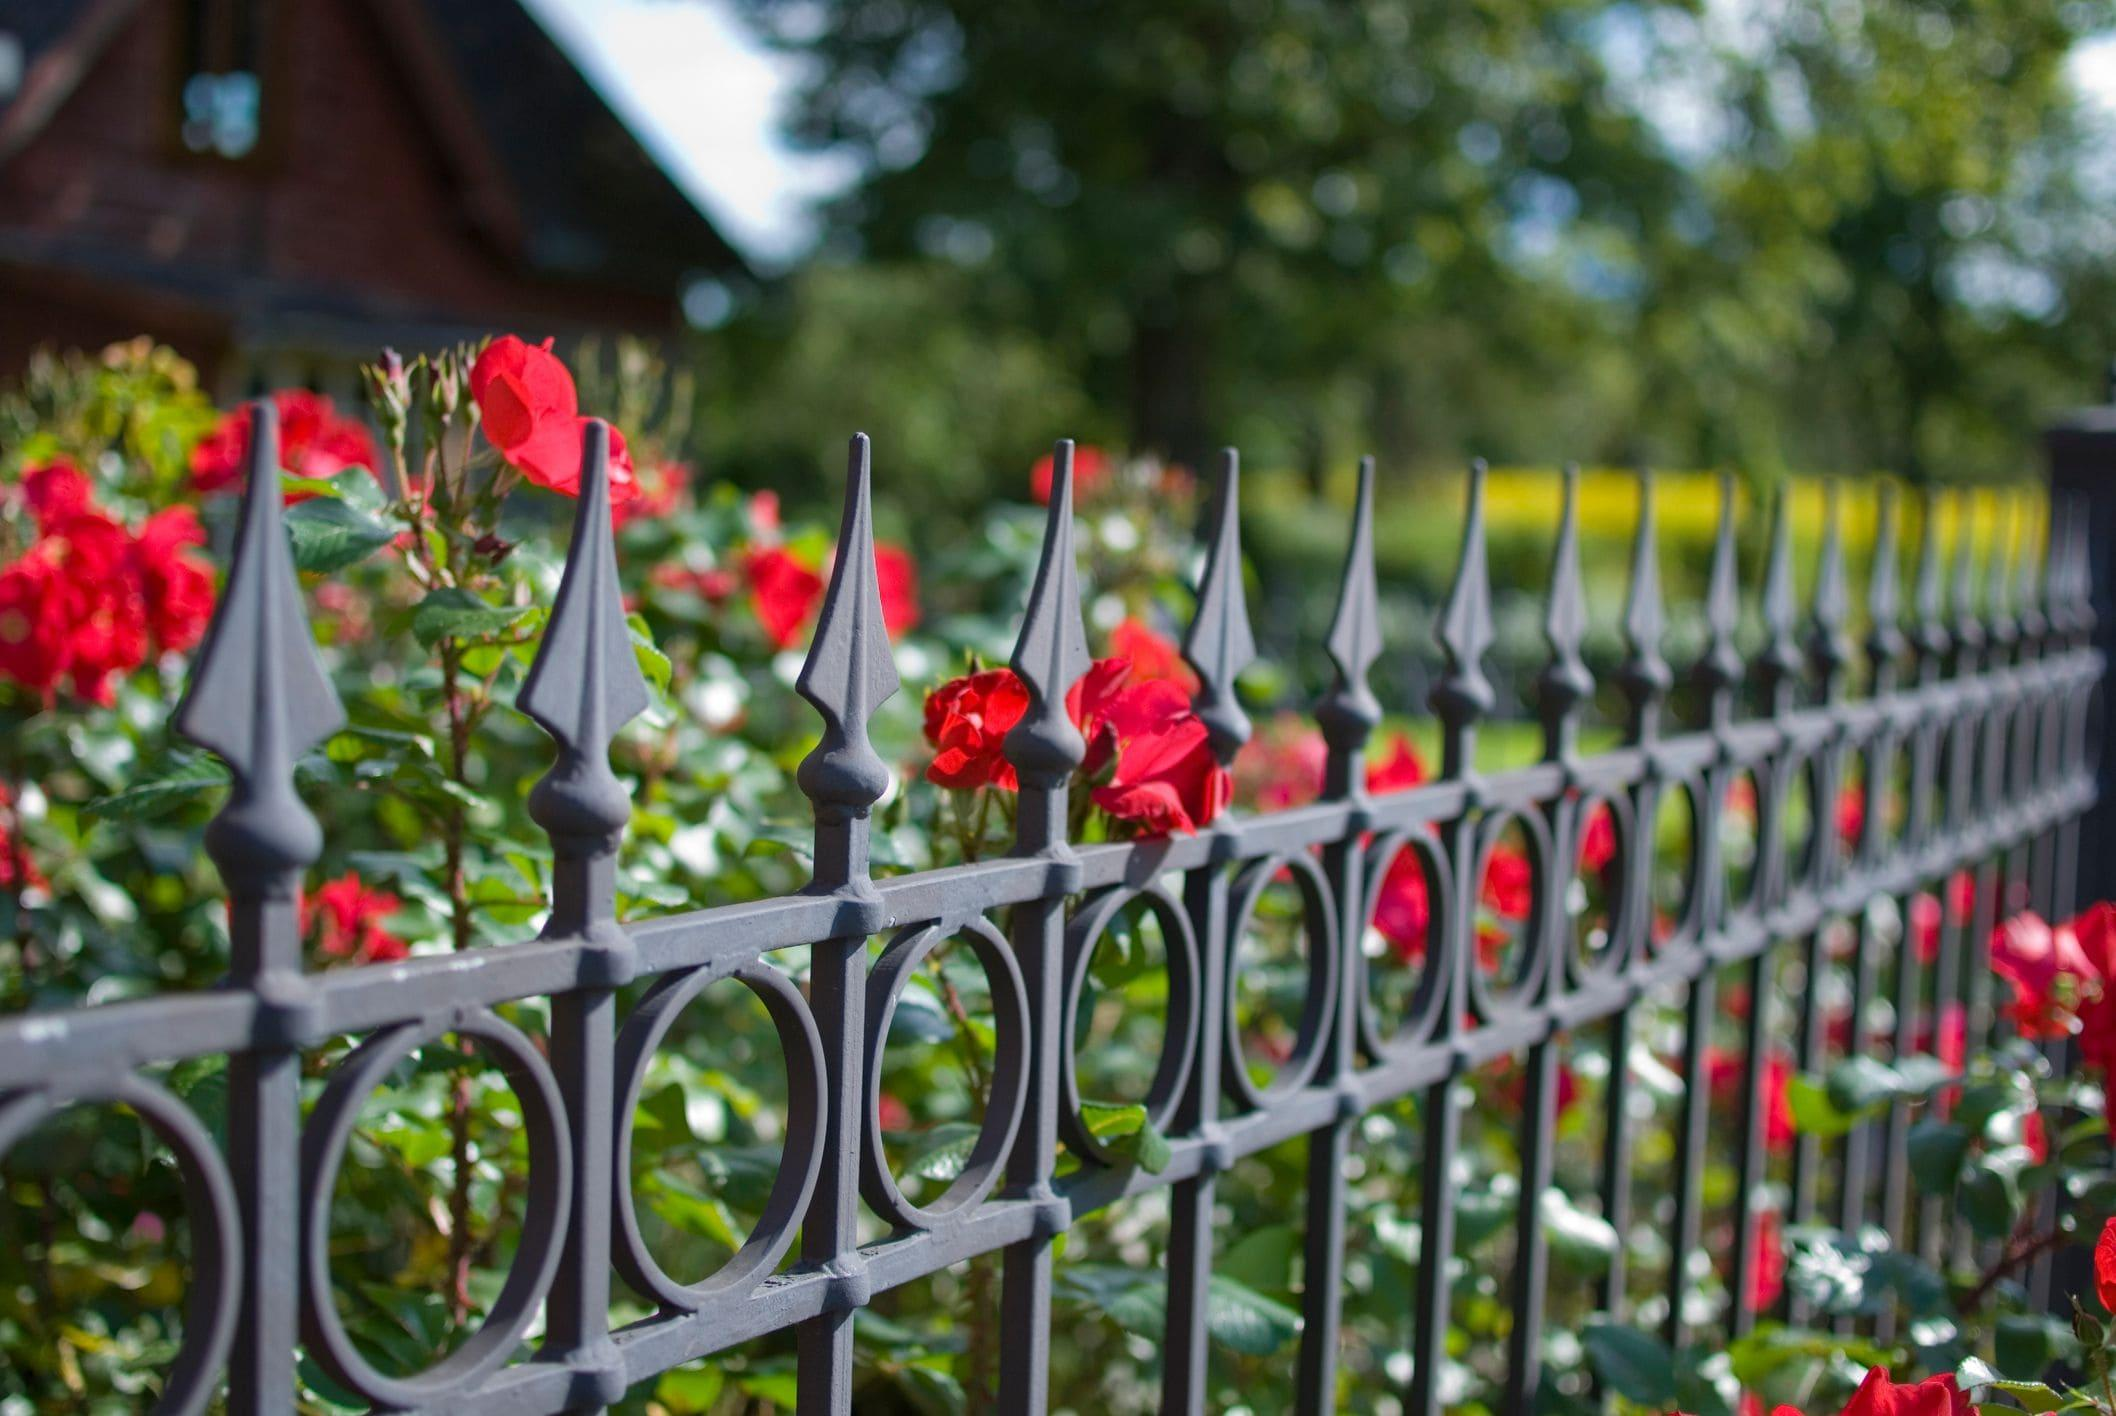 iron gate fencing with flowers